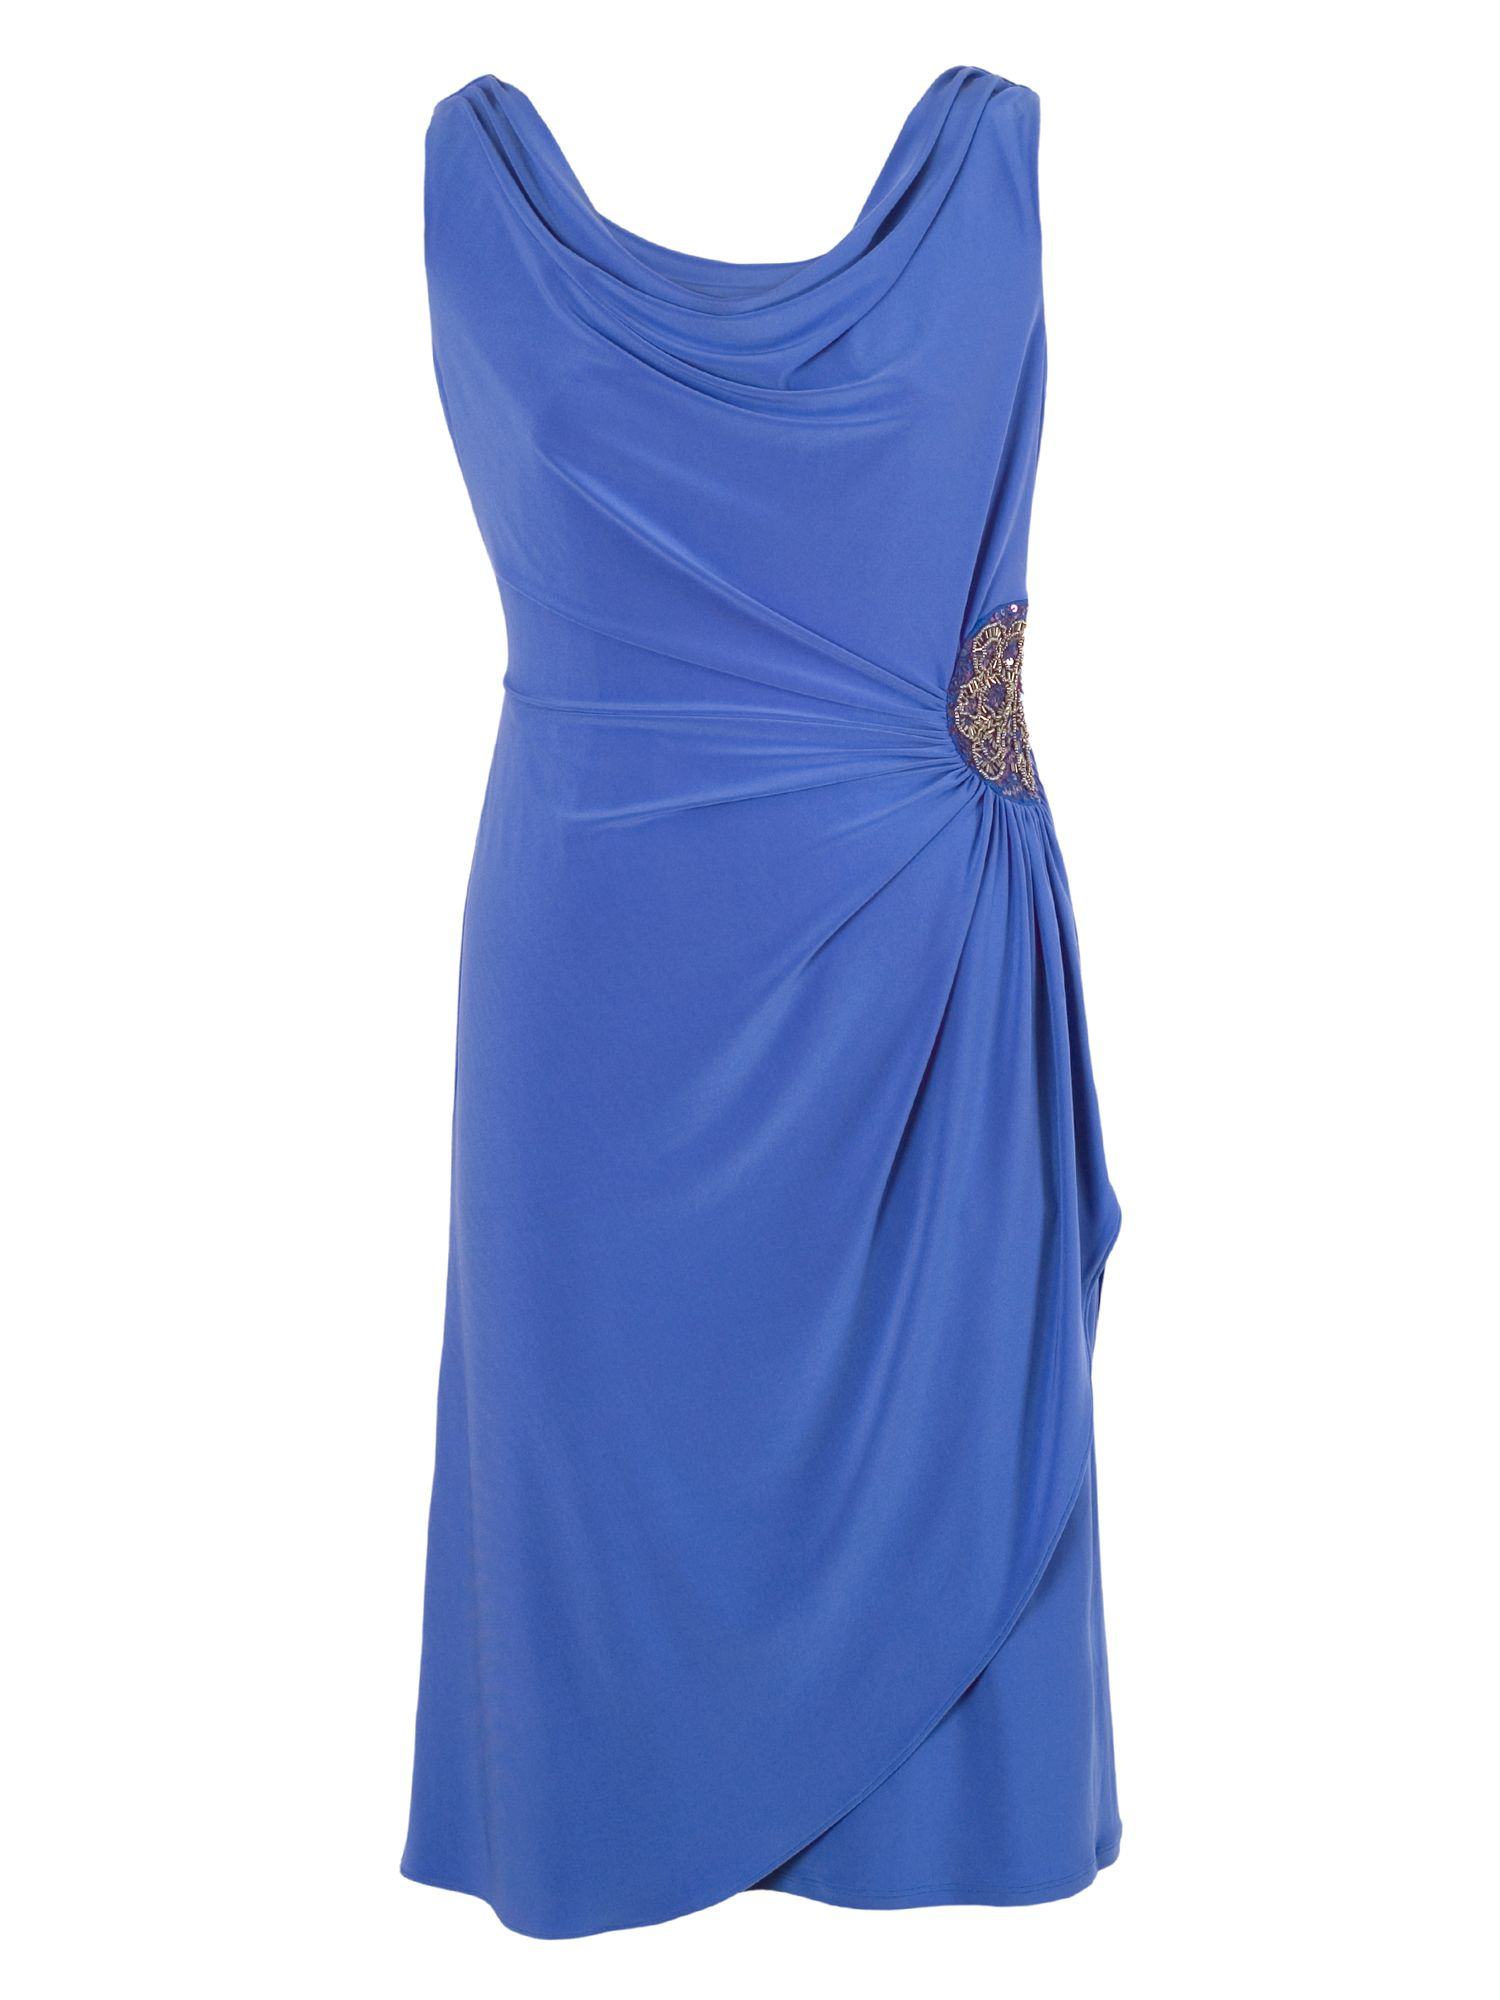 Chesca Cowl Neck Side Beaded Jersey Dress, Blue